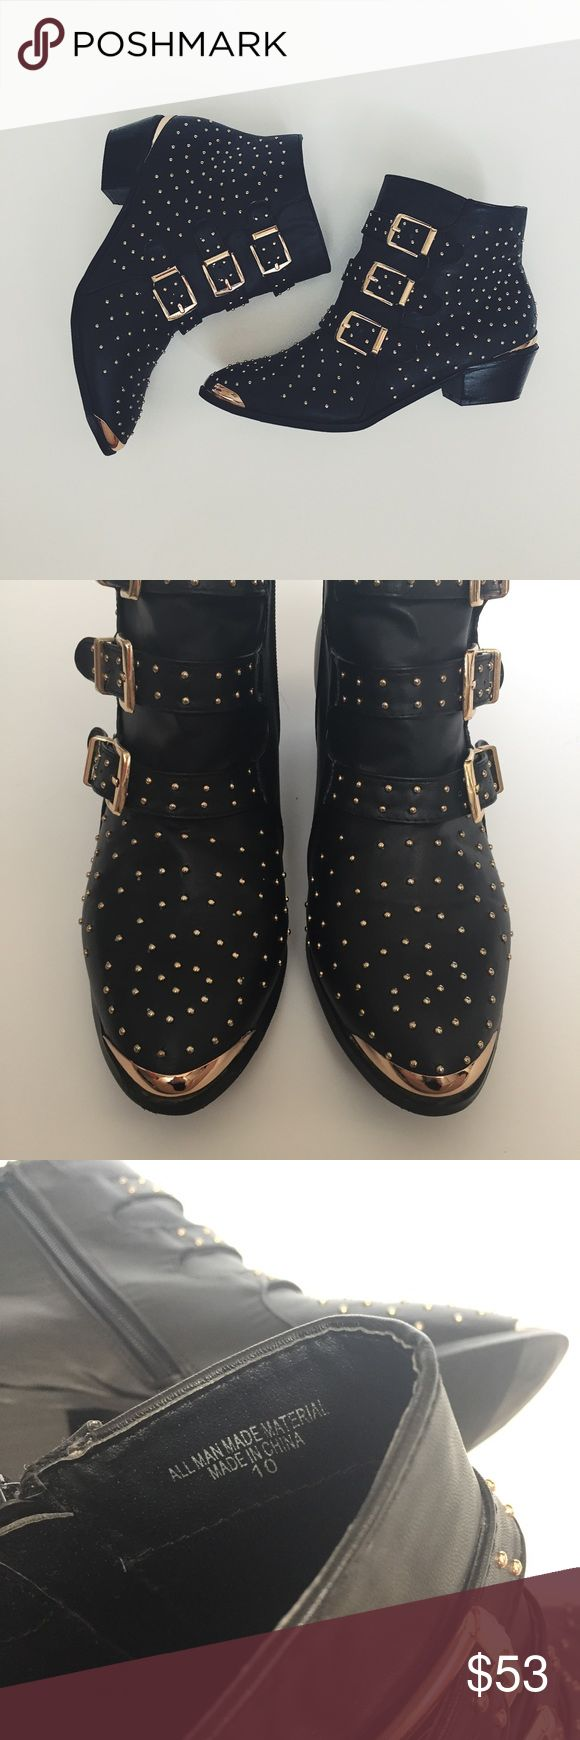 Black And Gold Studded Ankle Boots Black ankle booties with gold studs. Size 10. Only worn once and barely any wear is visible. Excellent condition. ✨Offers Welcome✨ Shoes Ankle Boots & Booties